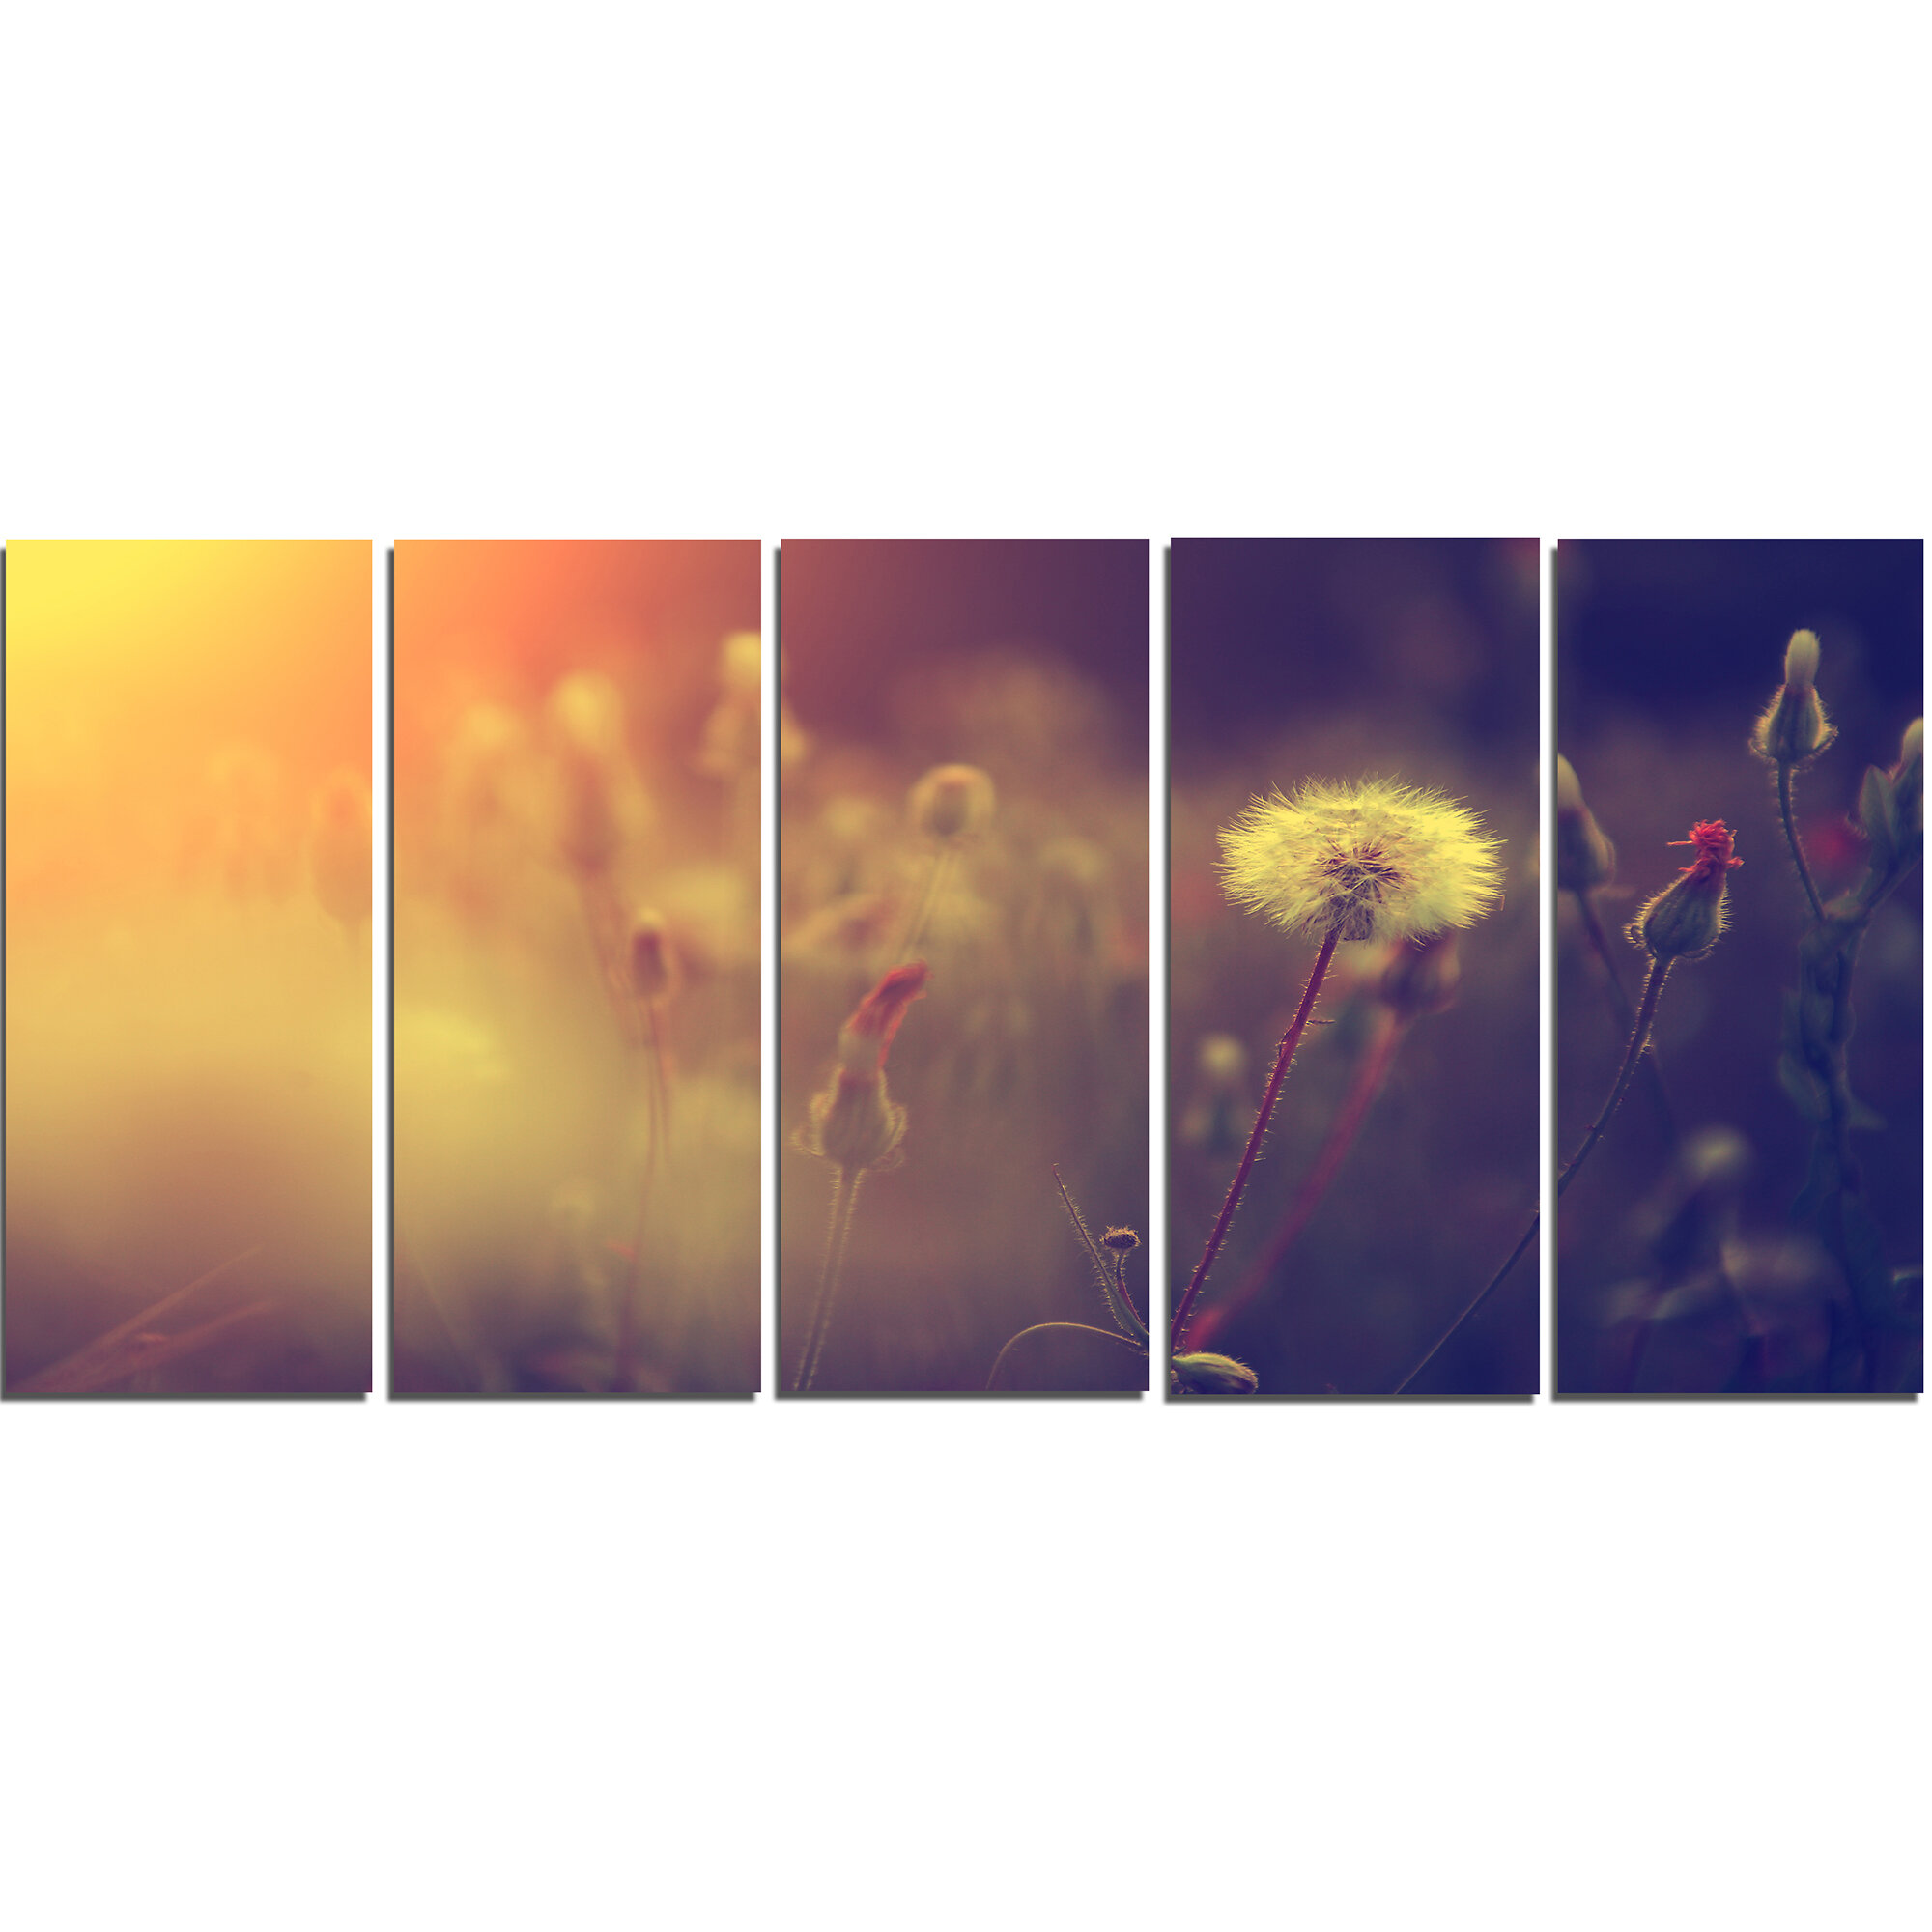 Designart Vintage Photo Of Dandelion Field 5 Piece Graphic Art On Wrapped Canvas Set Wayfair